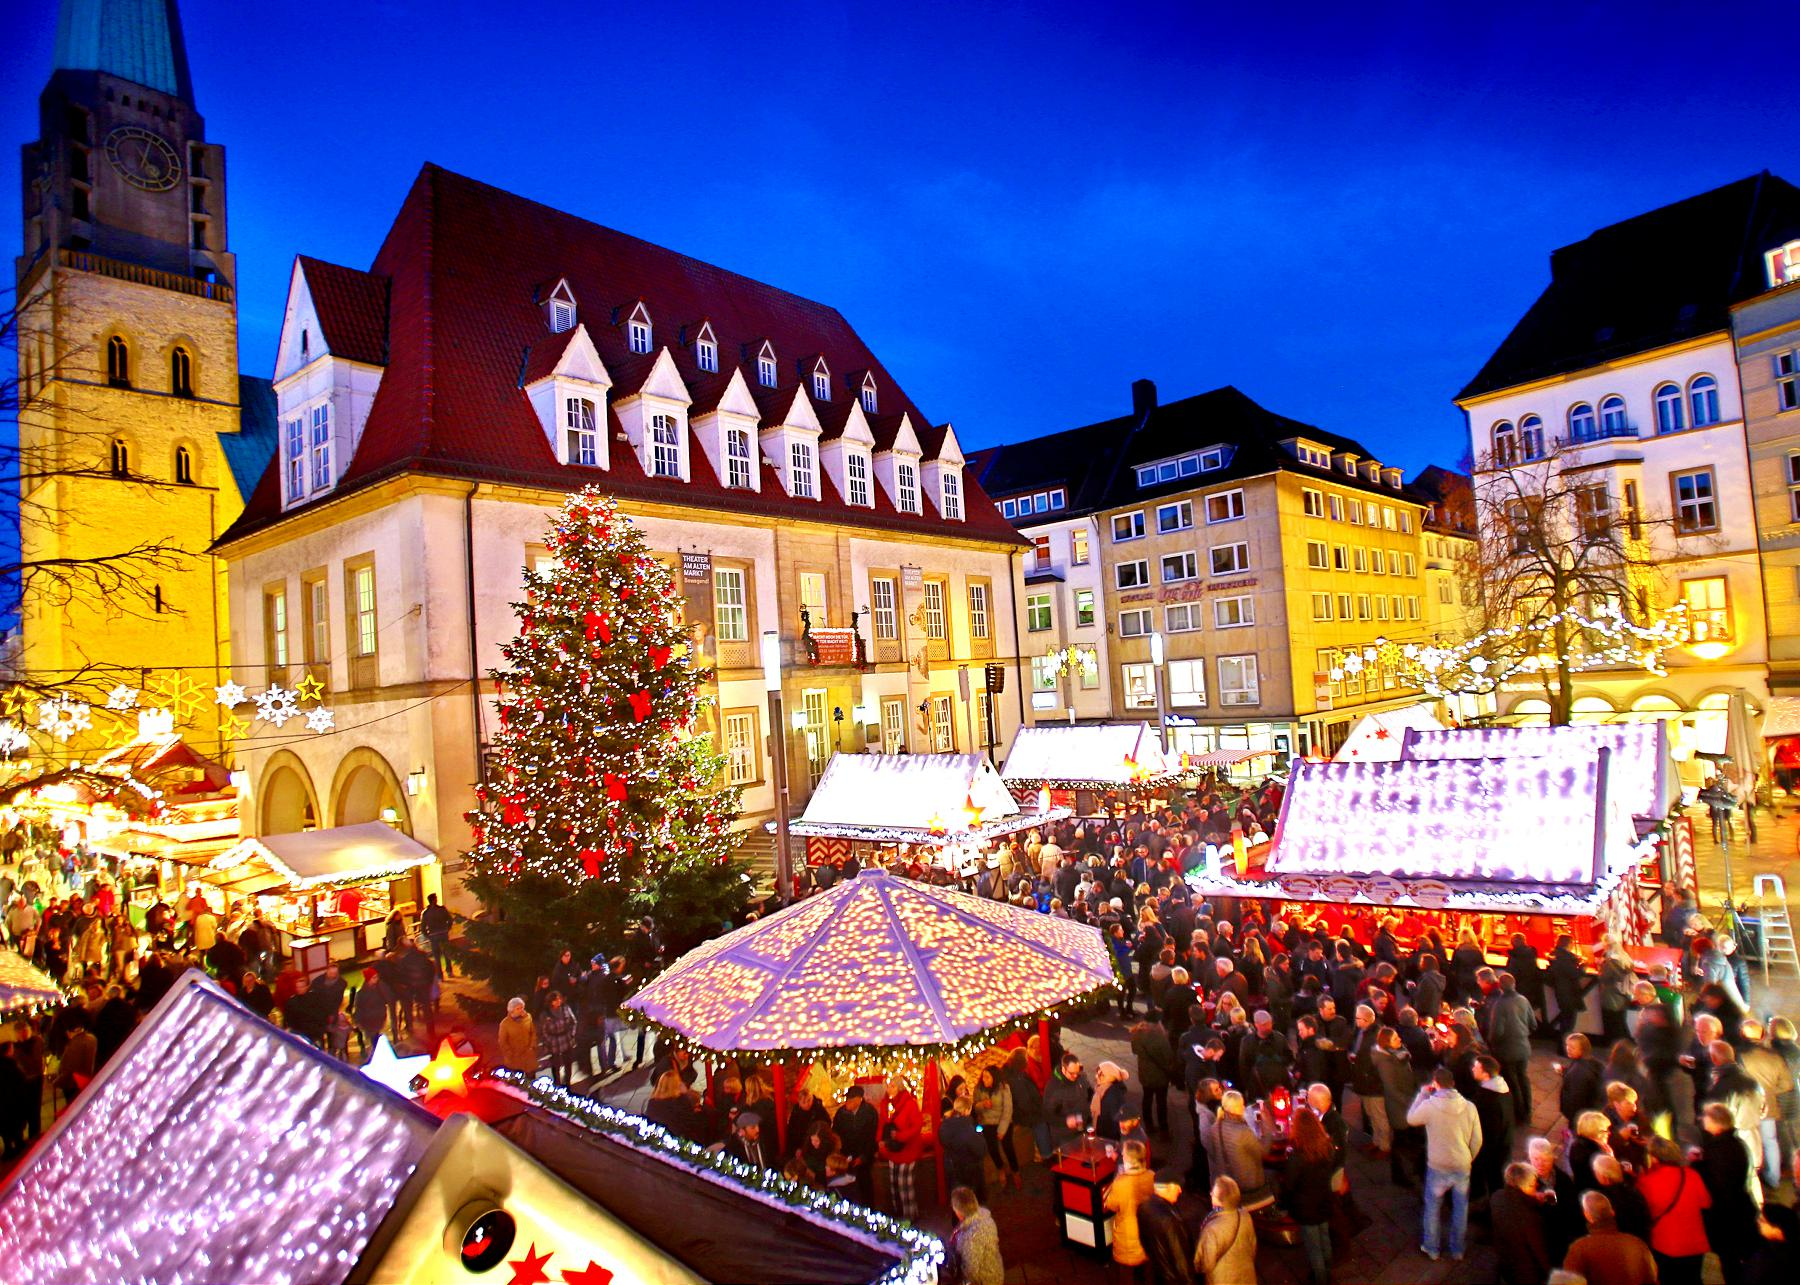 Stands at the Christmas Market in Bielefeld